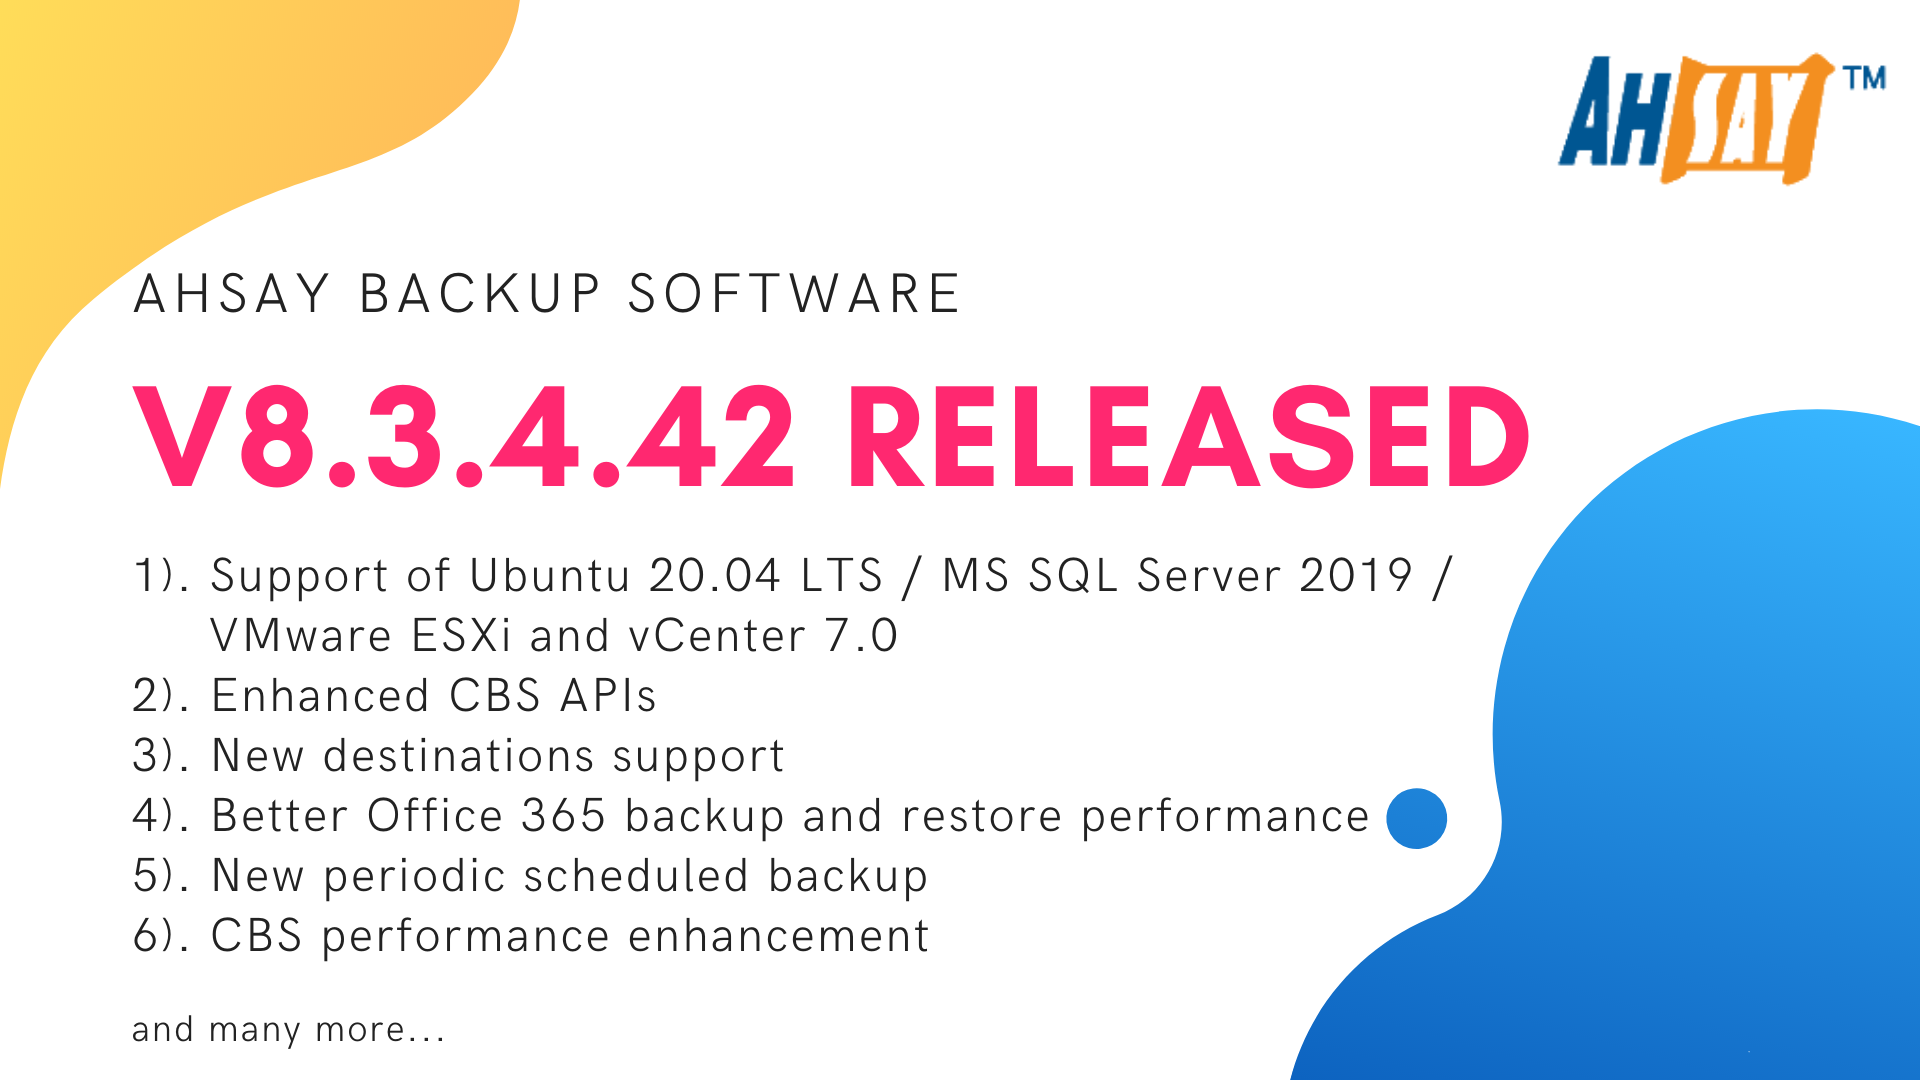 ahsay backup v8.3.4.42 released